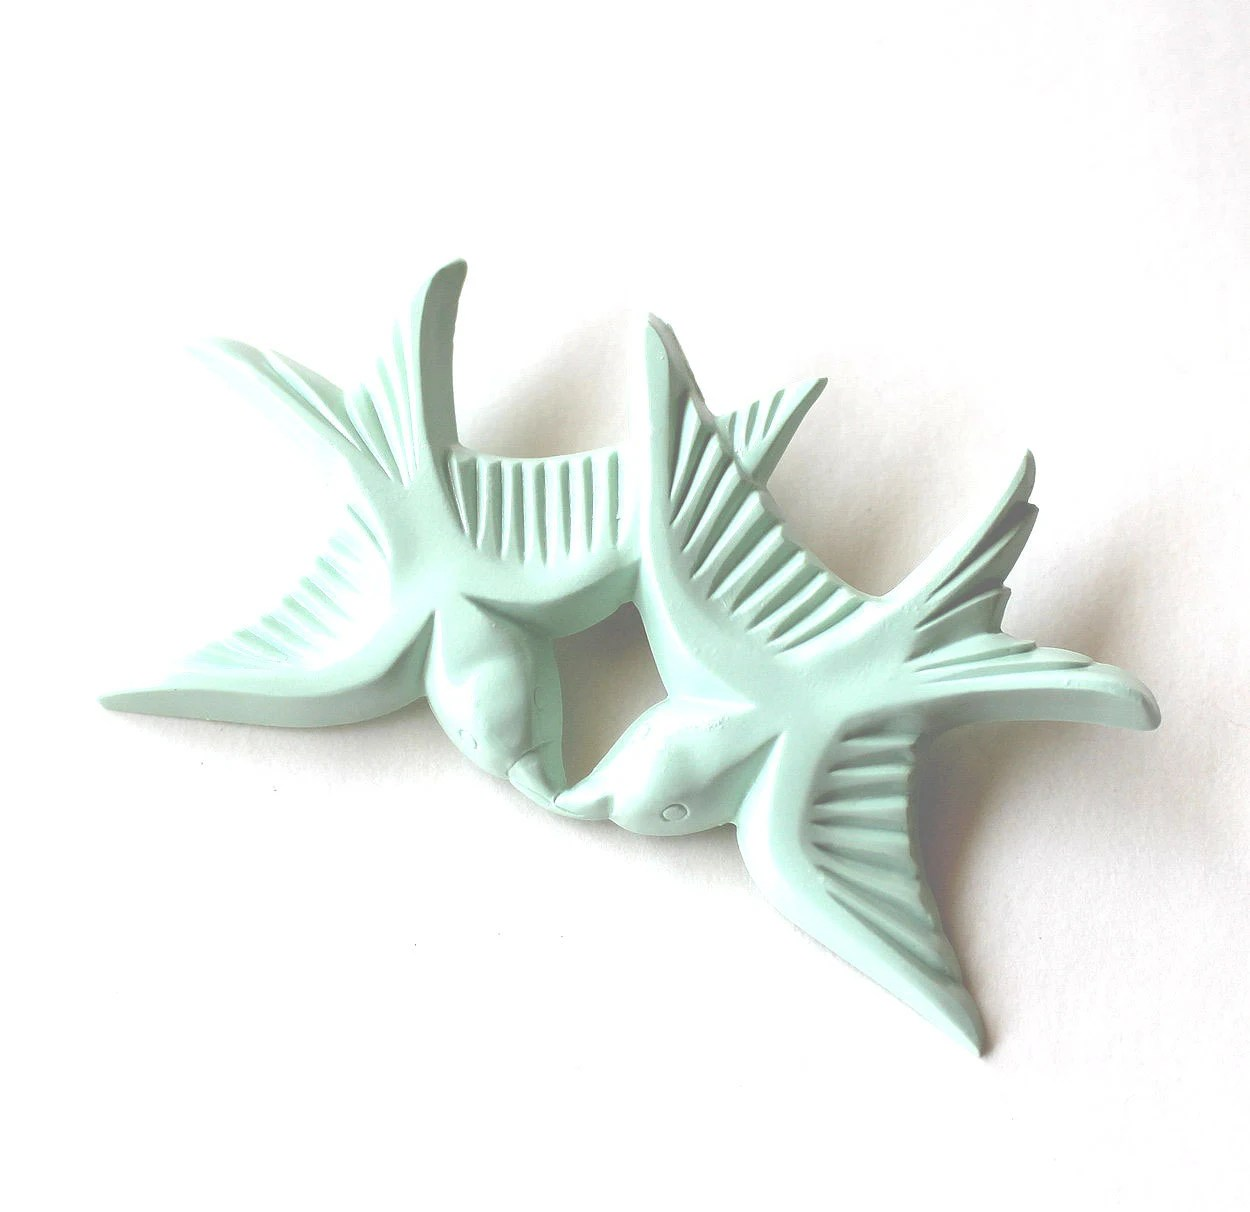 Brooch resin mint green pair of kissing swallow birds flying - Bunnys